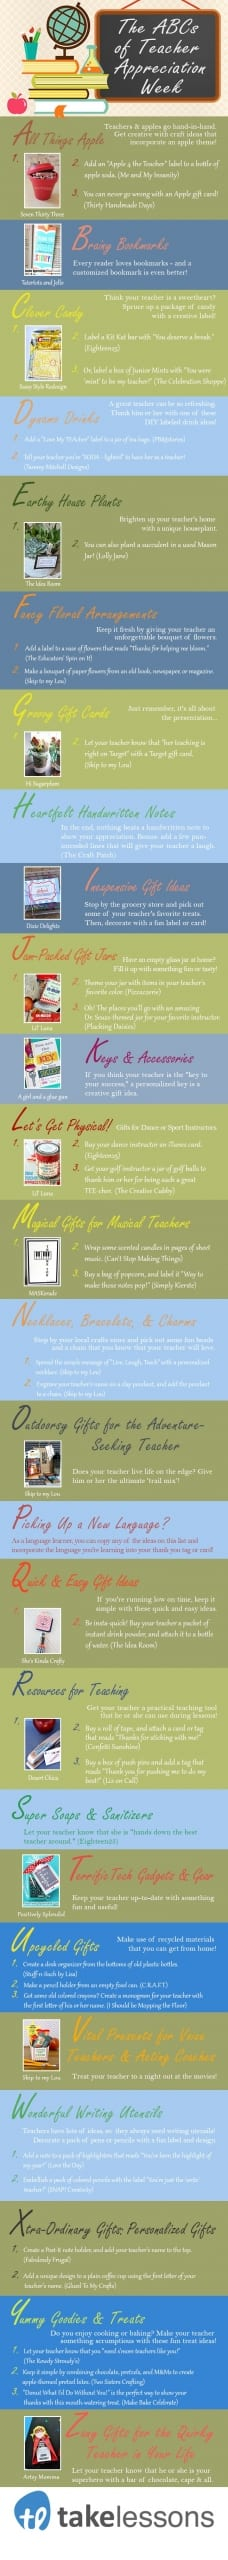 The ABCs of Teacher Appreciation Week [Infographic]